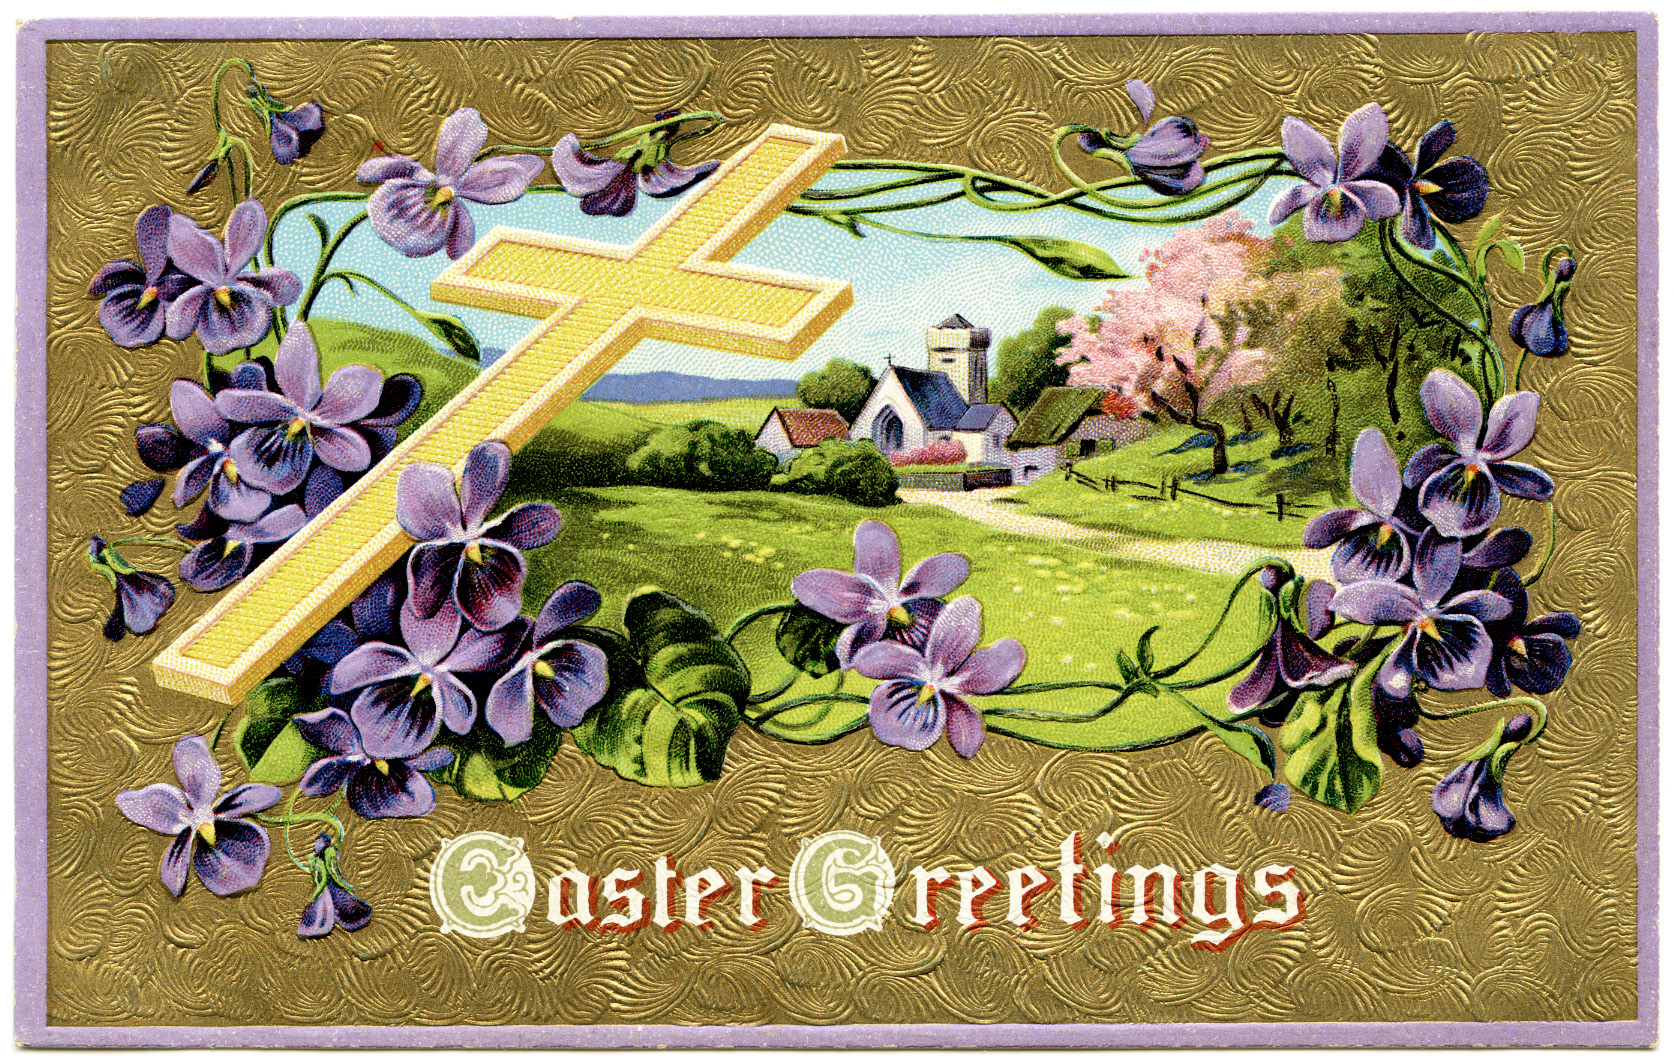 FREE Digital Vintage Easter Postcards | Old Design Shop Blog